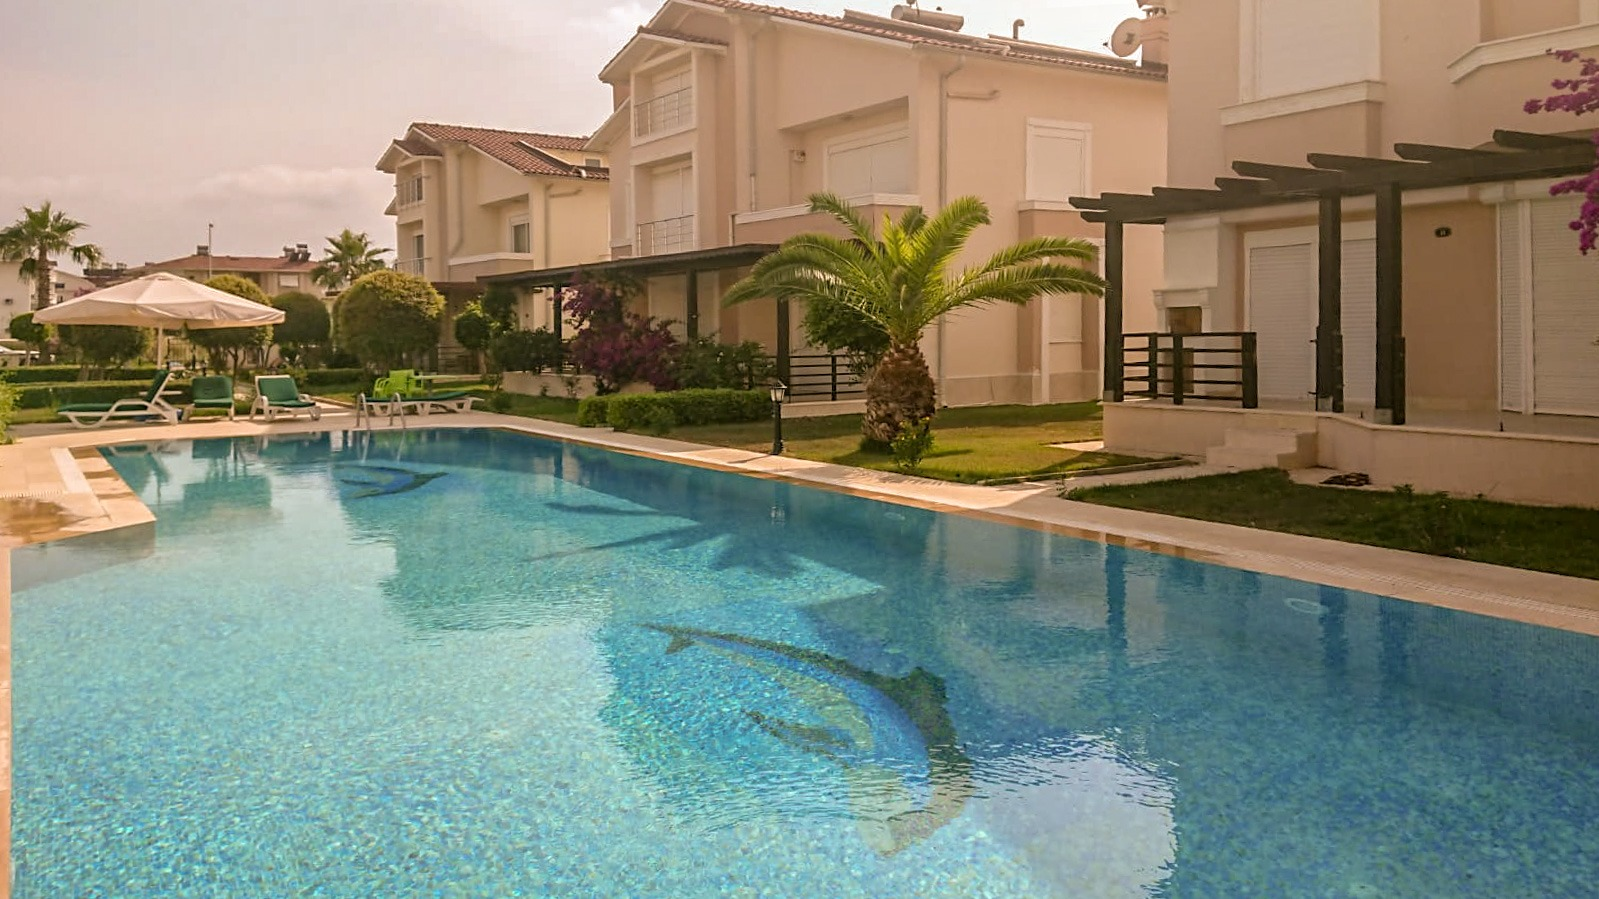 4-Bedroom Semi-Detached Villa